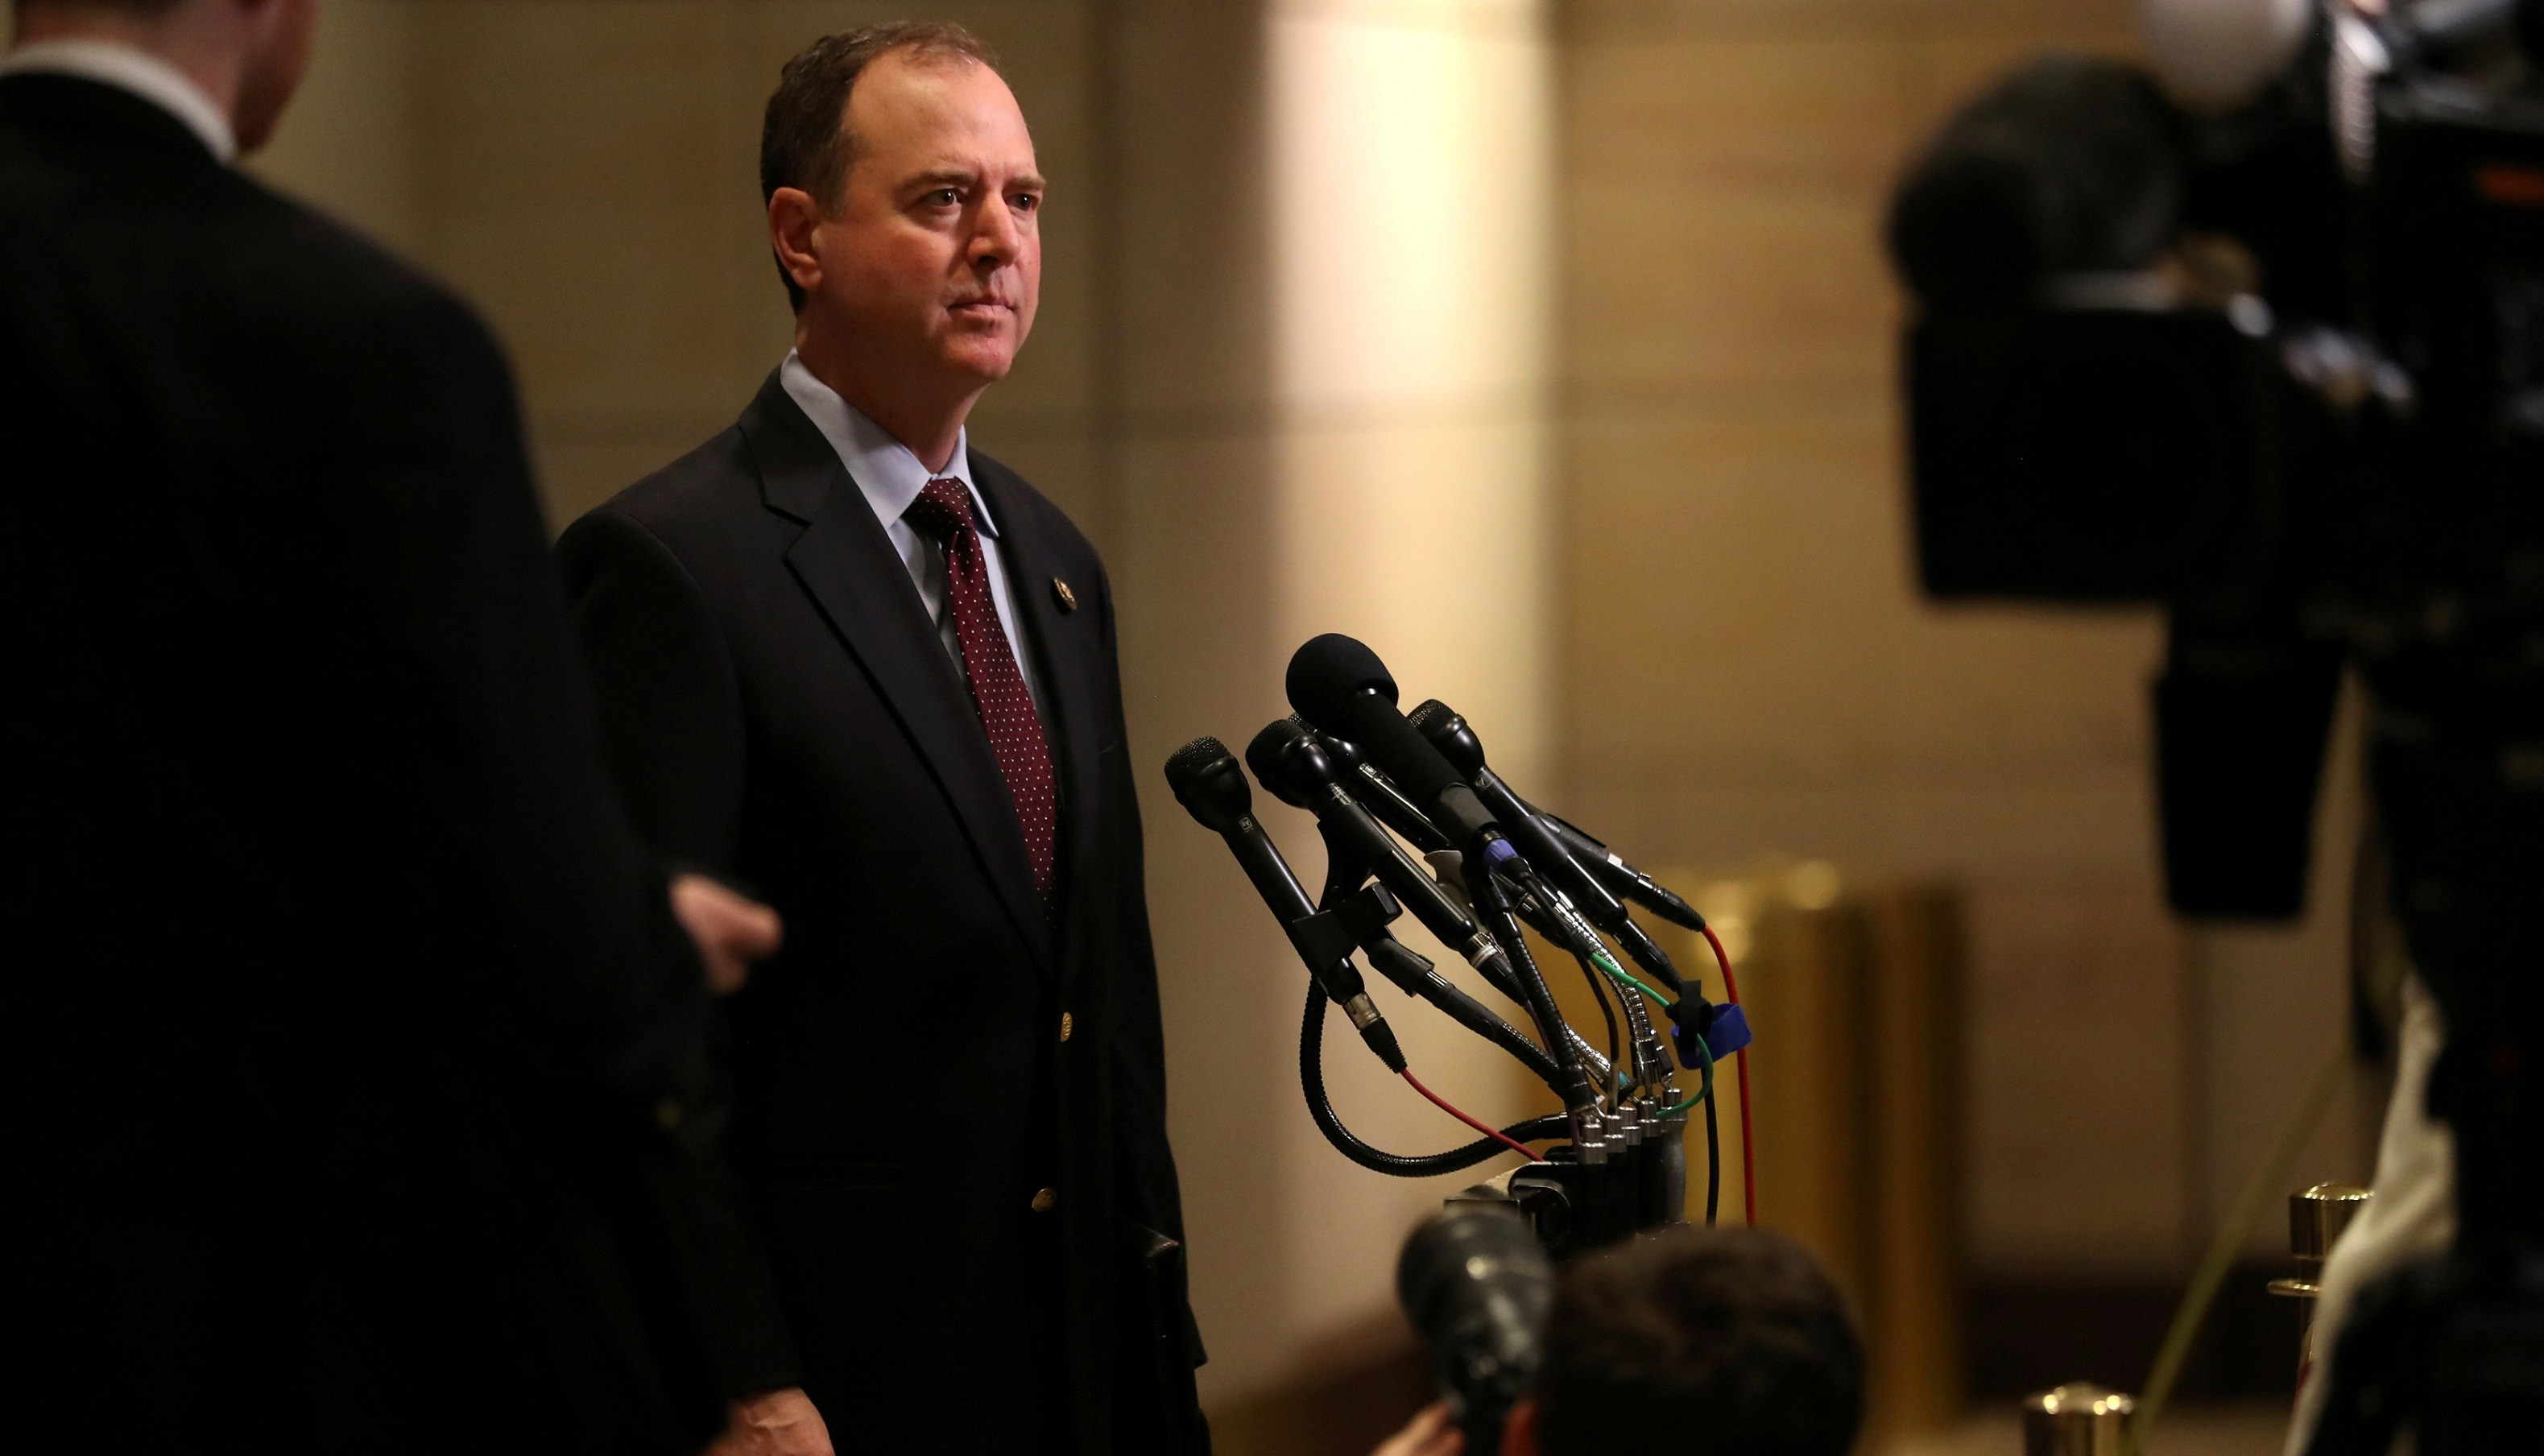 U.S. Representative Adam Schiff, the ranking Democrat on the House Intelligence Committee, talks to reporters as he arrives for U.S. Secretary of Homeland Security Kirstjen Nielsen, FBI Director Christopher Wray and Director of National Intelligence Daniel Coats to brief the U.S. House of Representatives in a classified members-only briefing on election security at the U.S. Capitol in Washington, U.S. May 22, 2018.  REUTERS/Jonathan Ernst - RC1F64BD7DB0